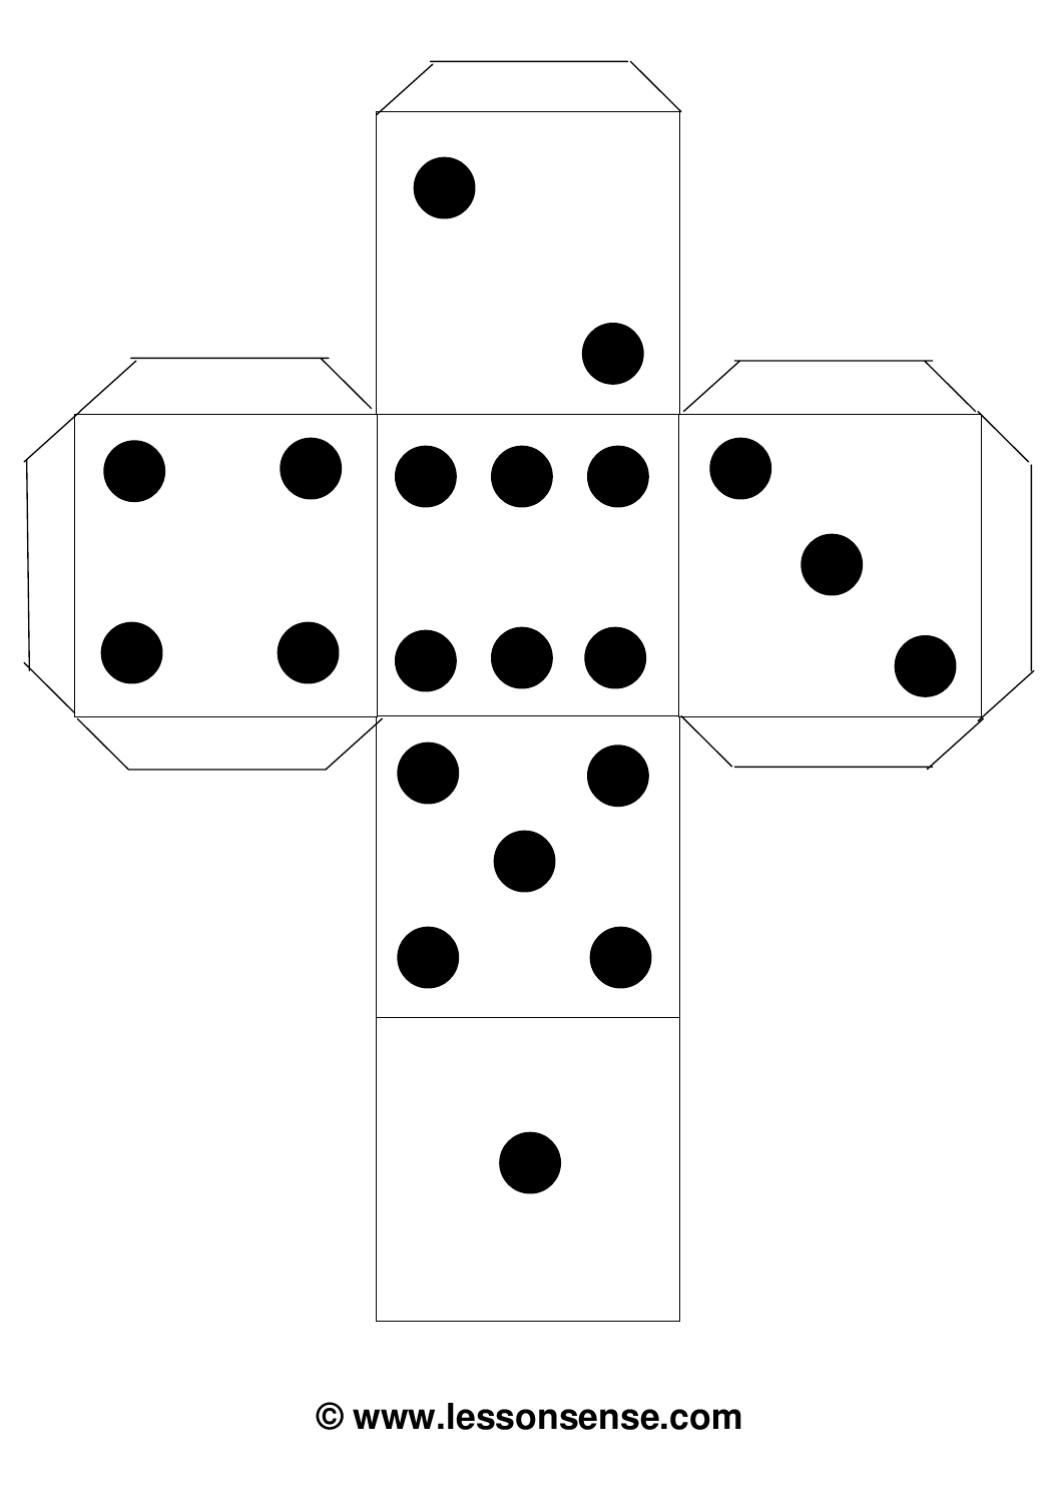 dice template dice dots template by erin moore issuu dice template